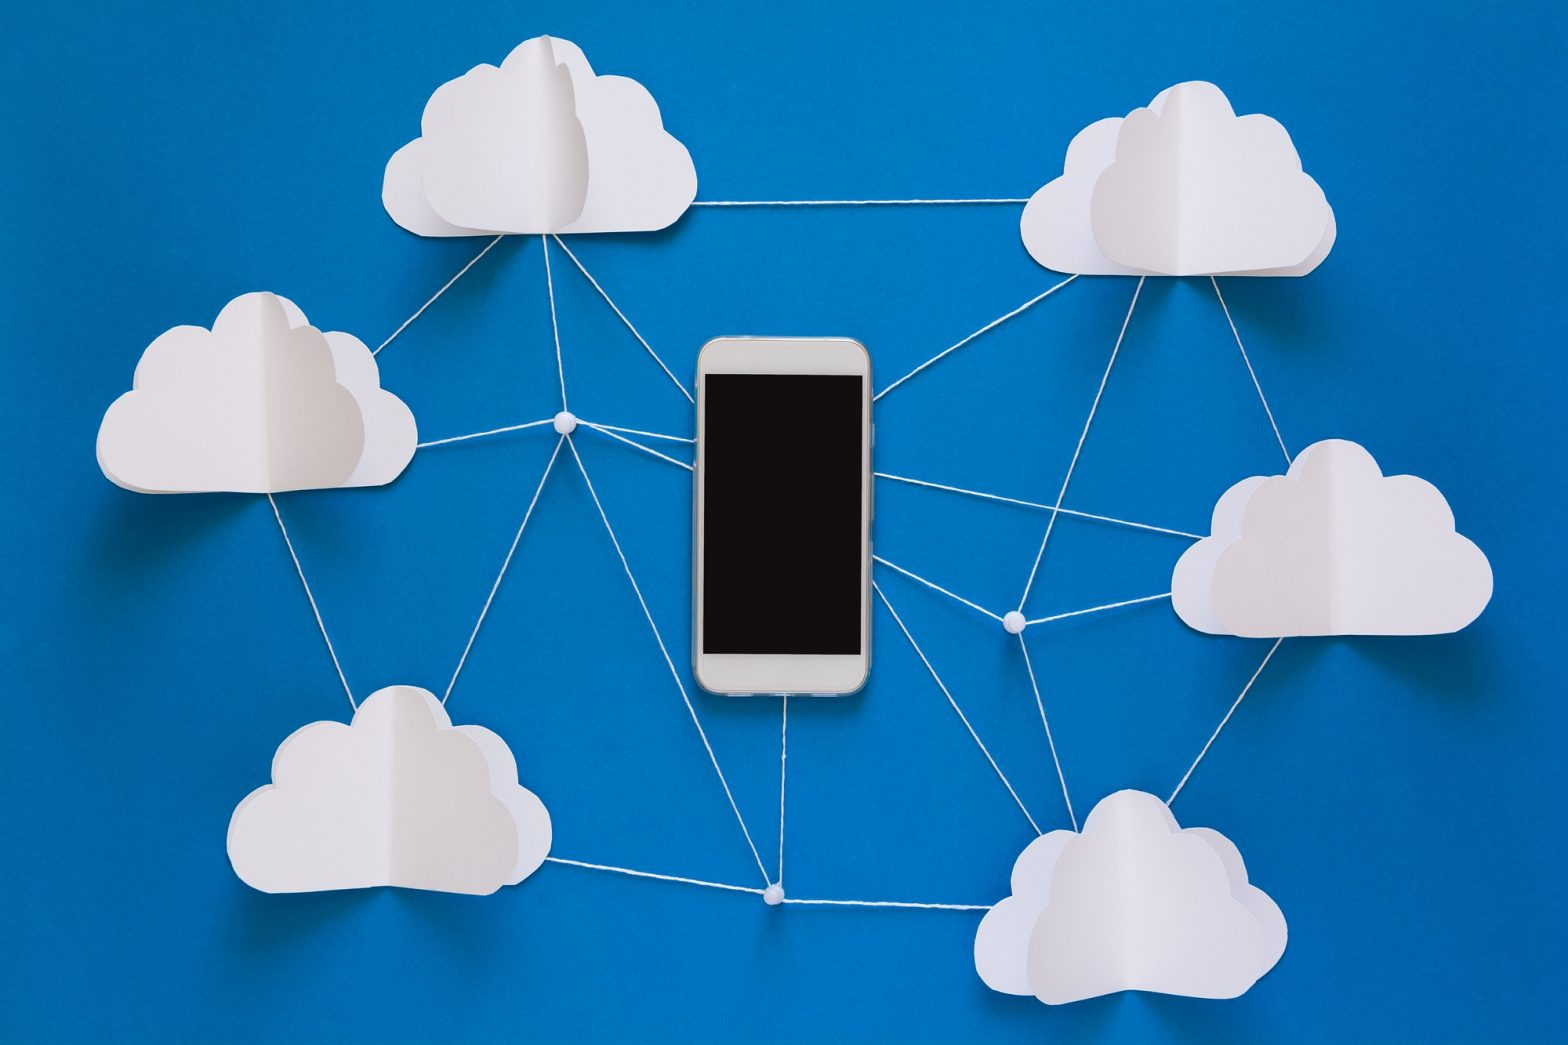 Network connection and cloud storage technology concept